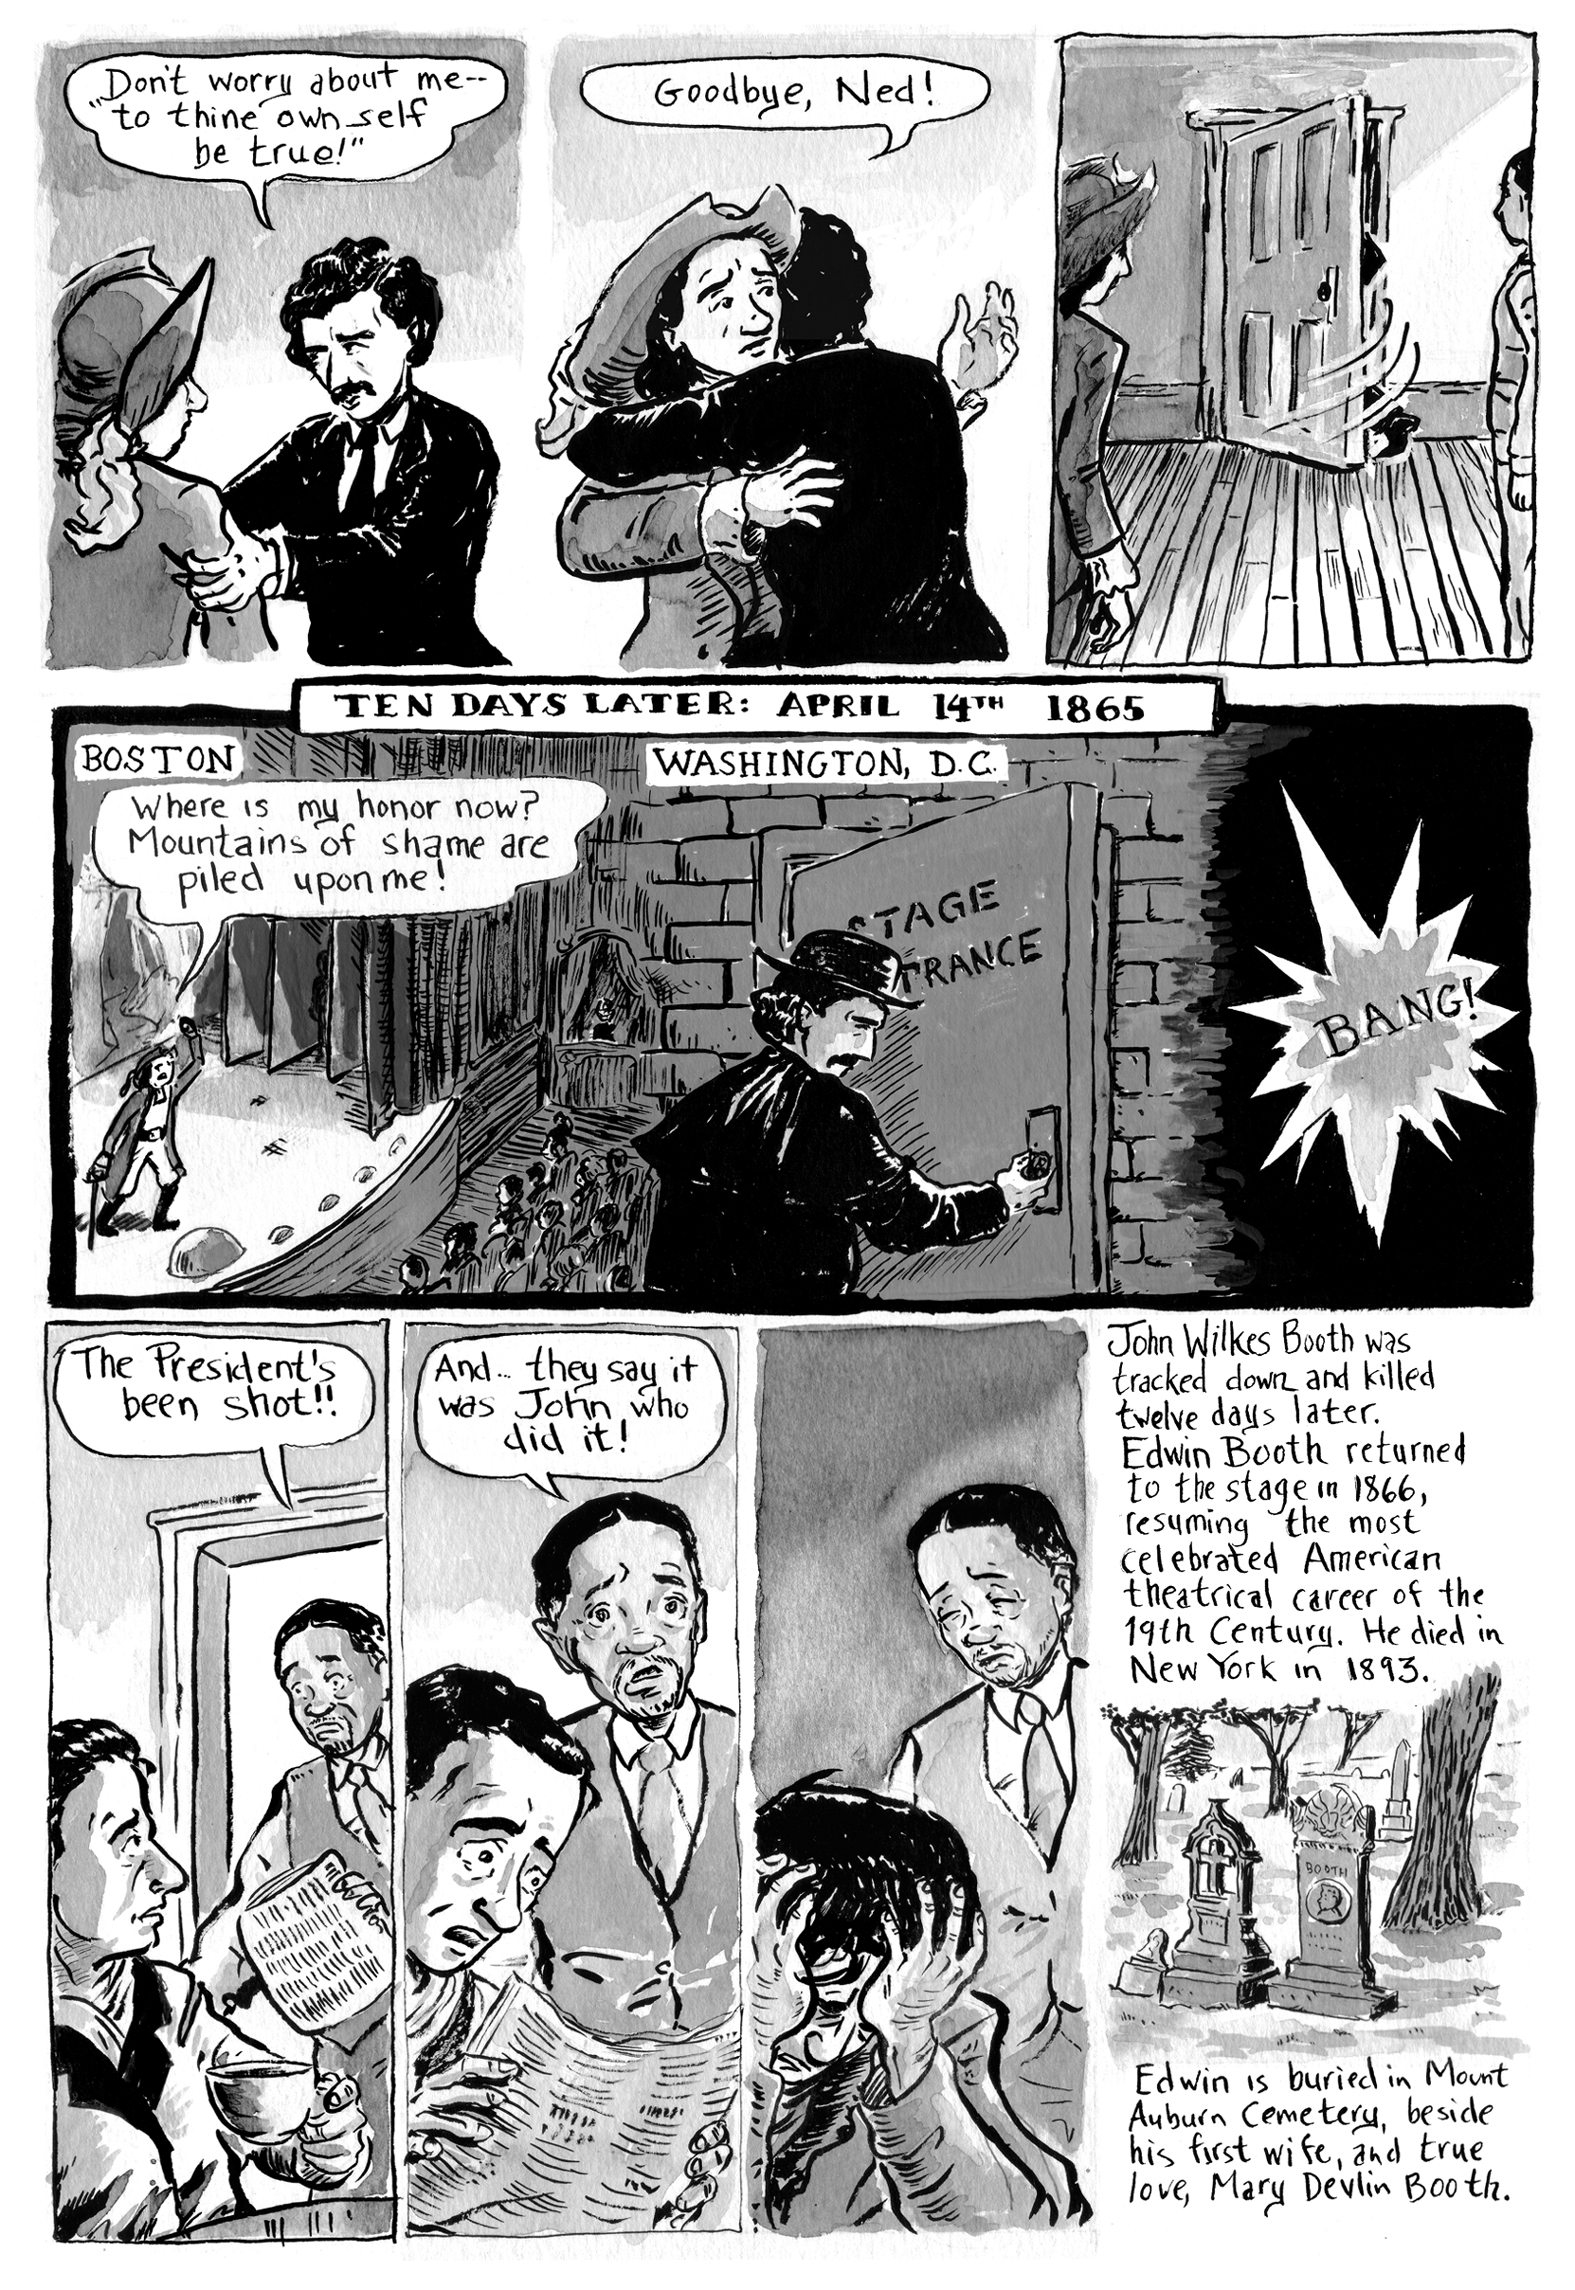 The Last Act, Page 5